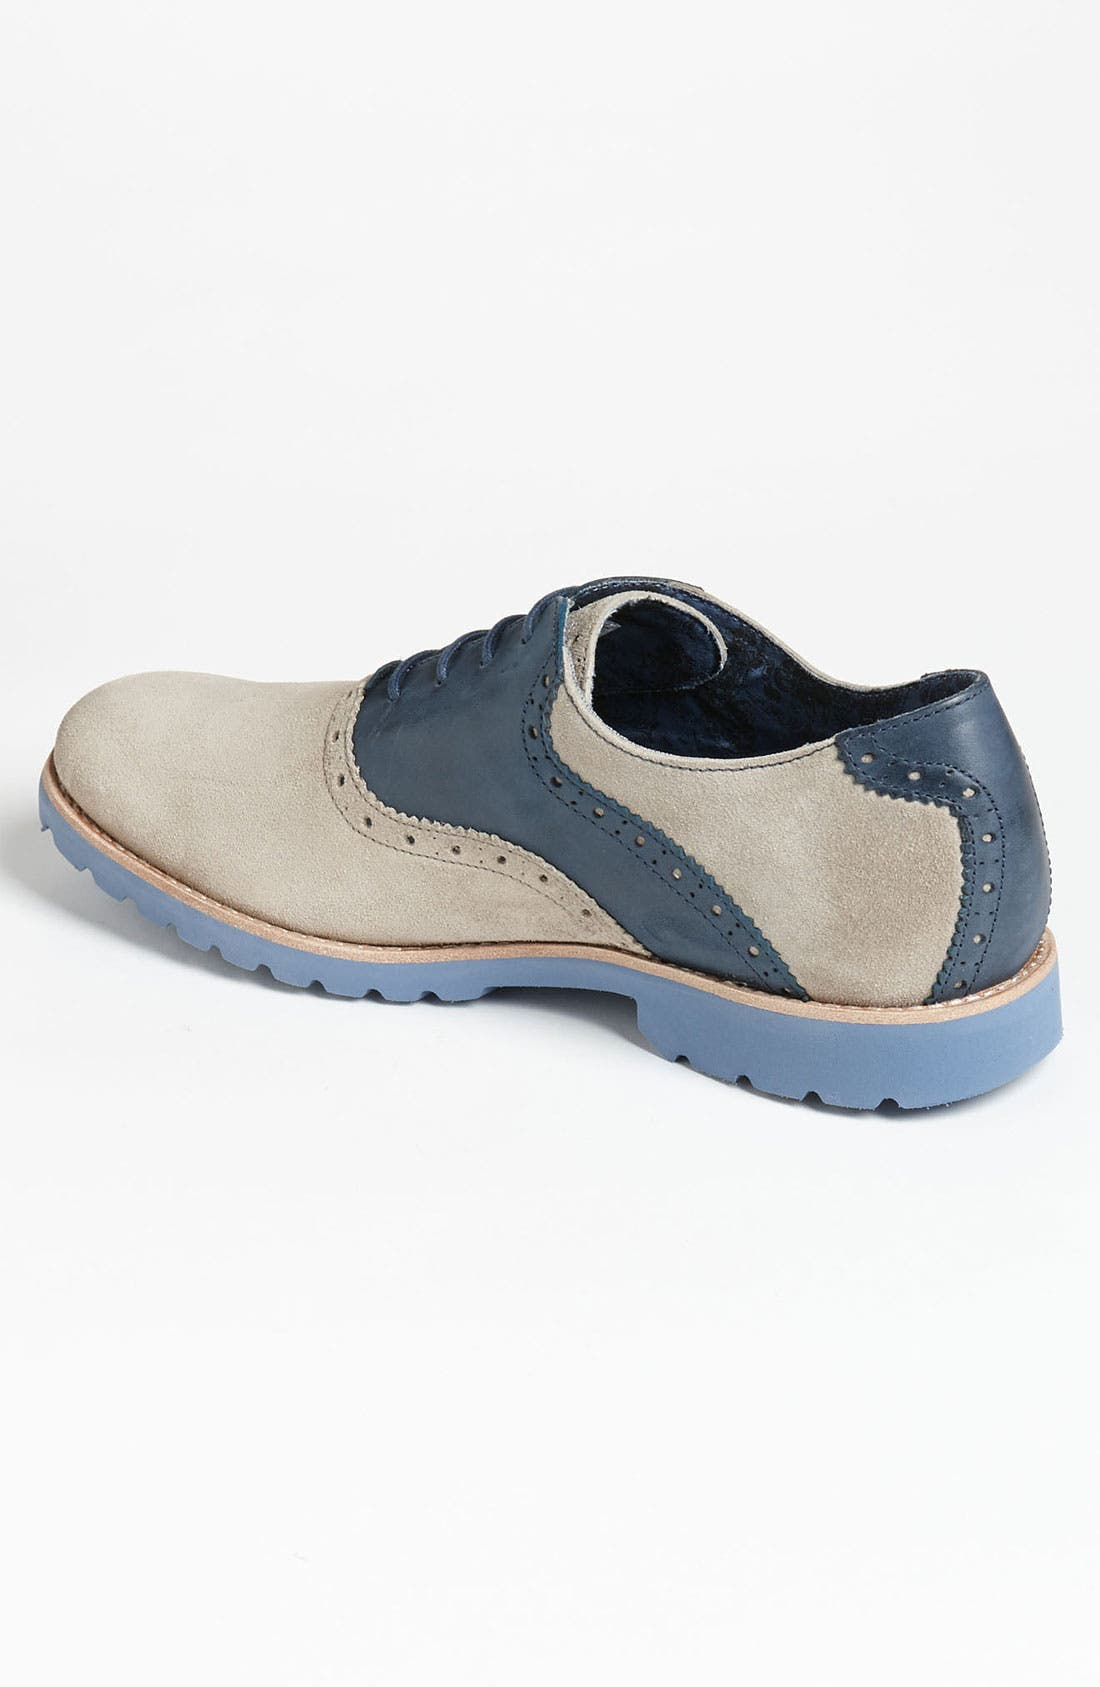 Alternate Image 2  - Rockport 'Ledge Hill' Saddle Shoe